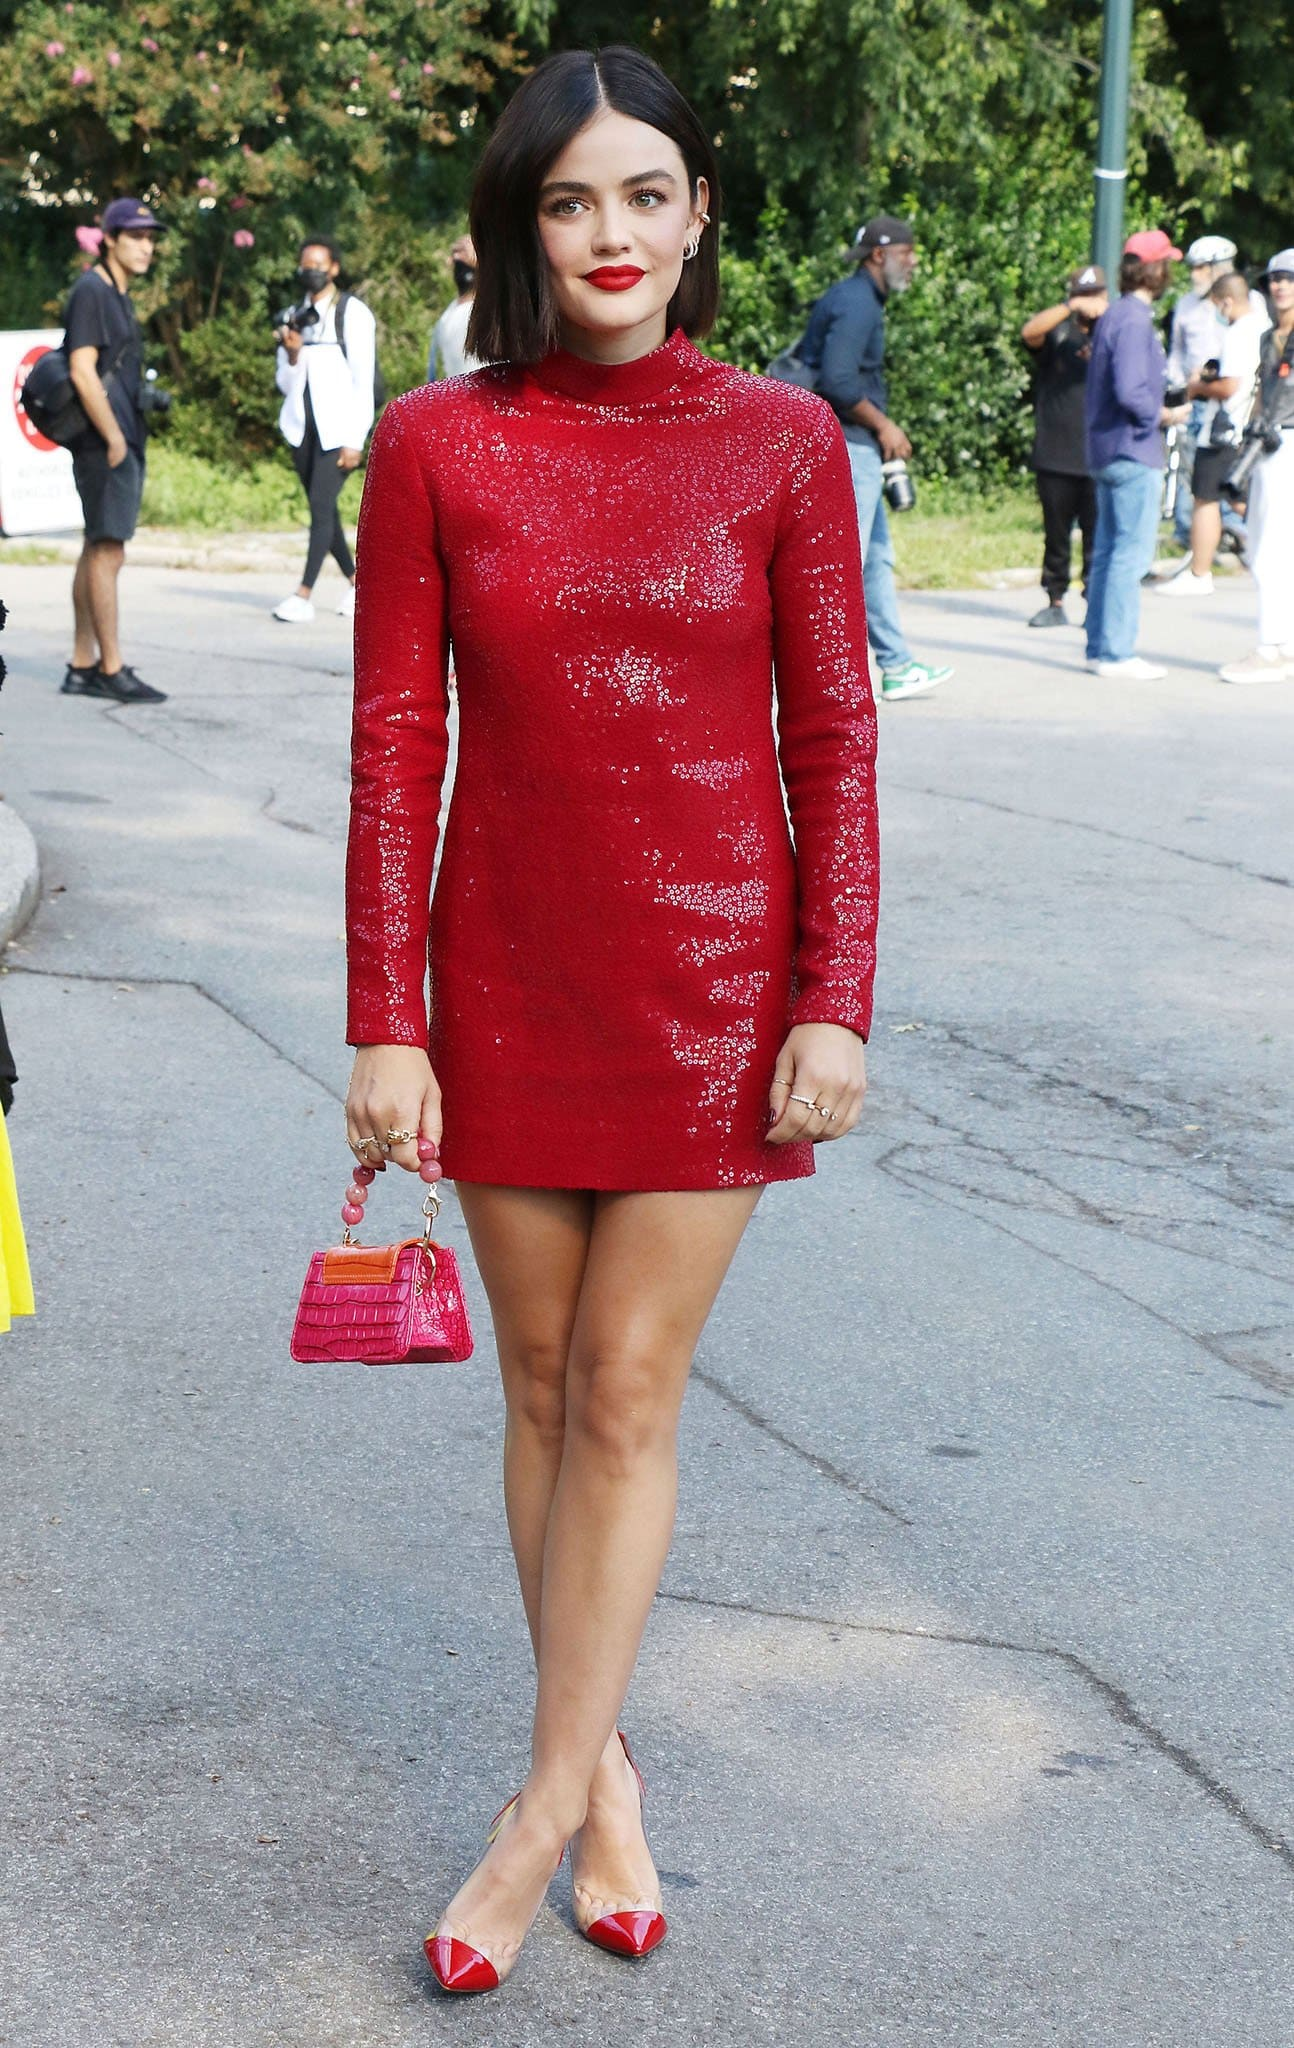 Lucy Hale looks sensational in a red sequined mini dress for Michael Kors Spring/ Summer 2022 runway presentation during NYFW on September 10, 2021